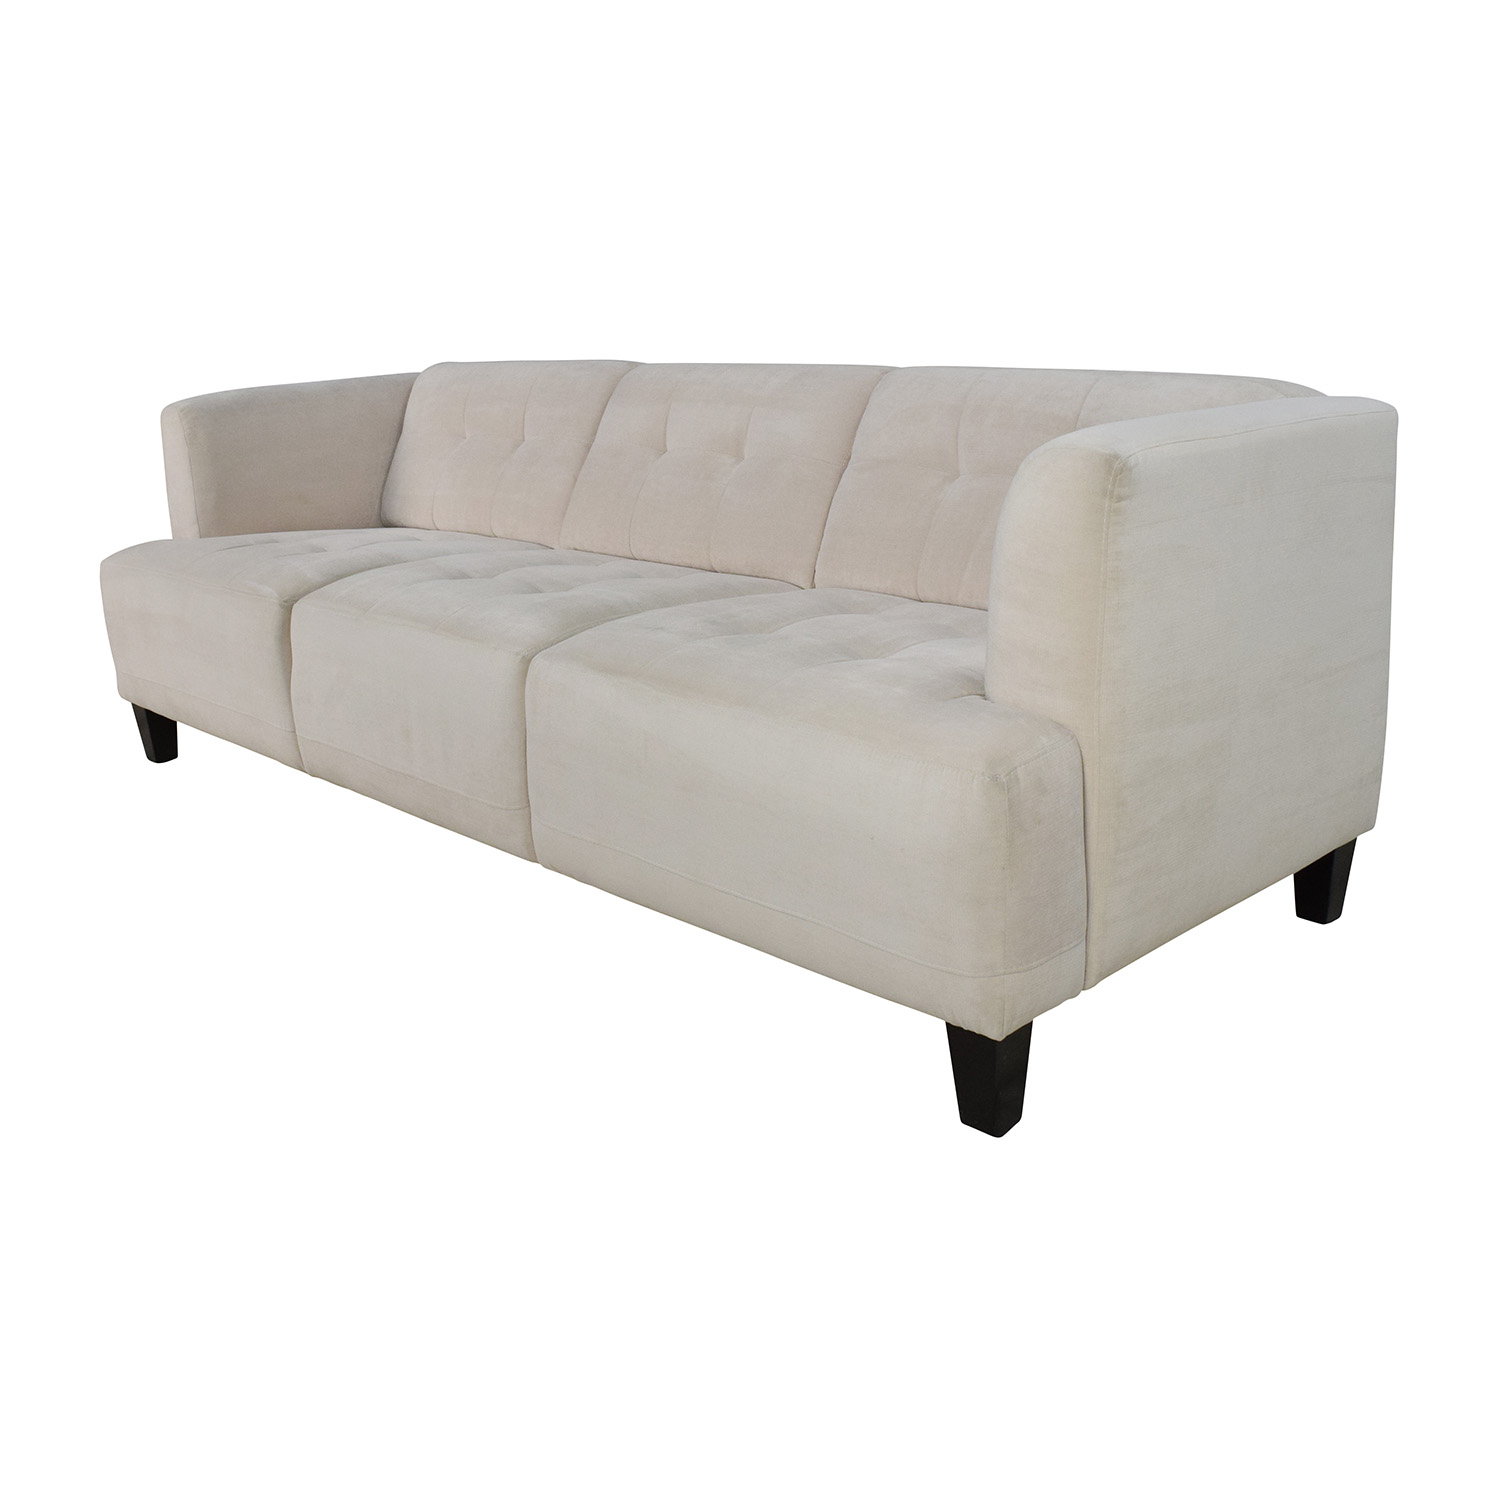 button tufted sofas black leather sofa cushion covers 56 off macy 39s alessia pearl